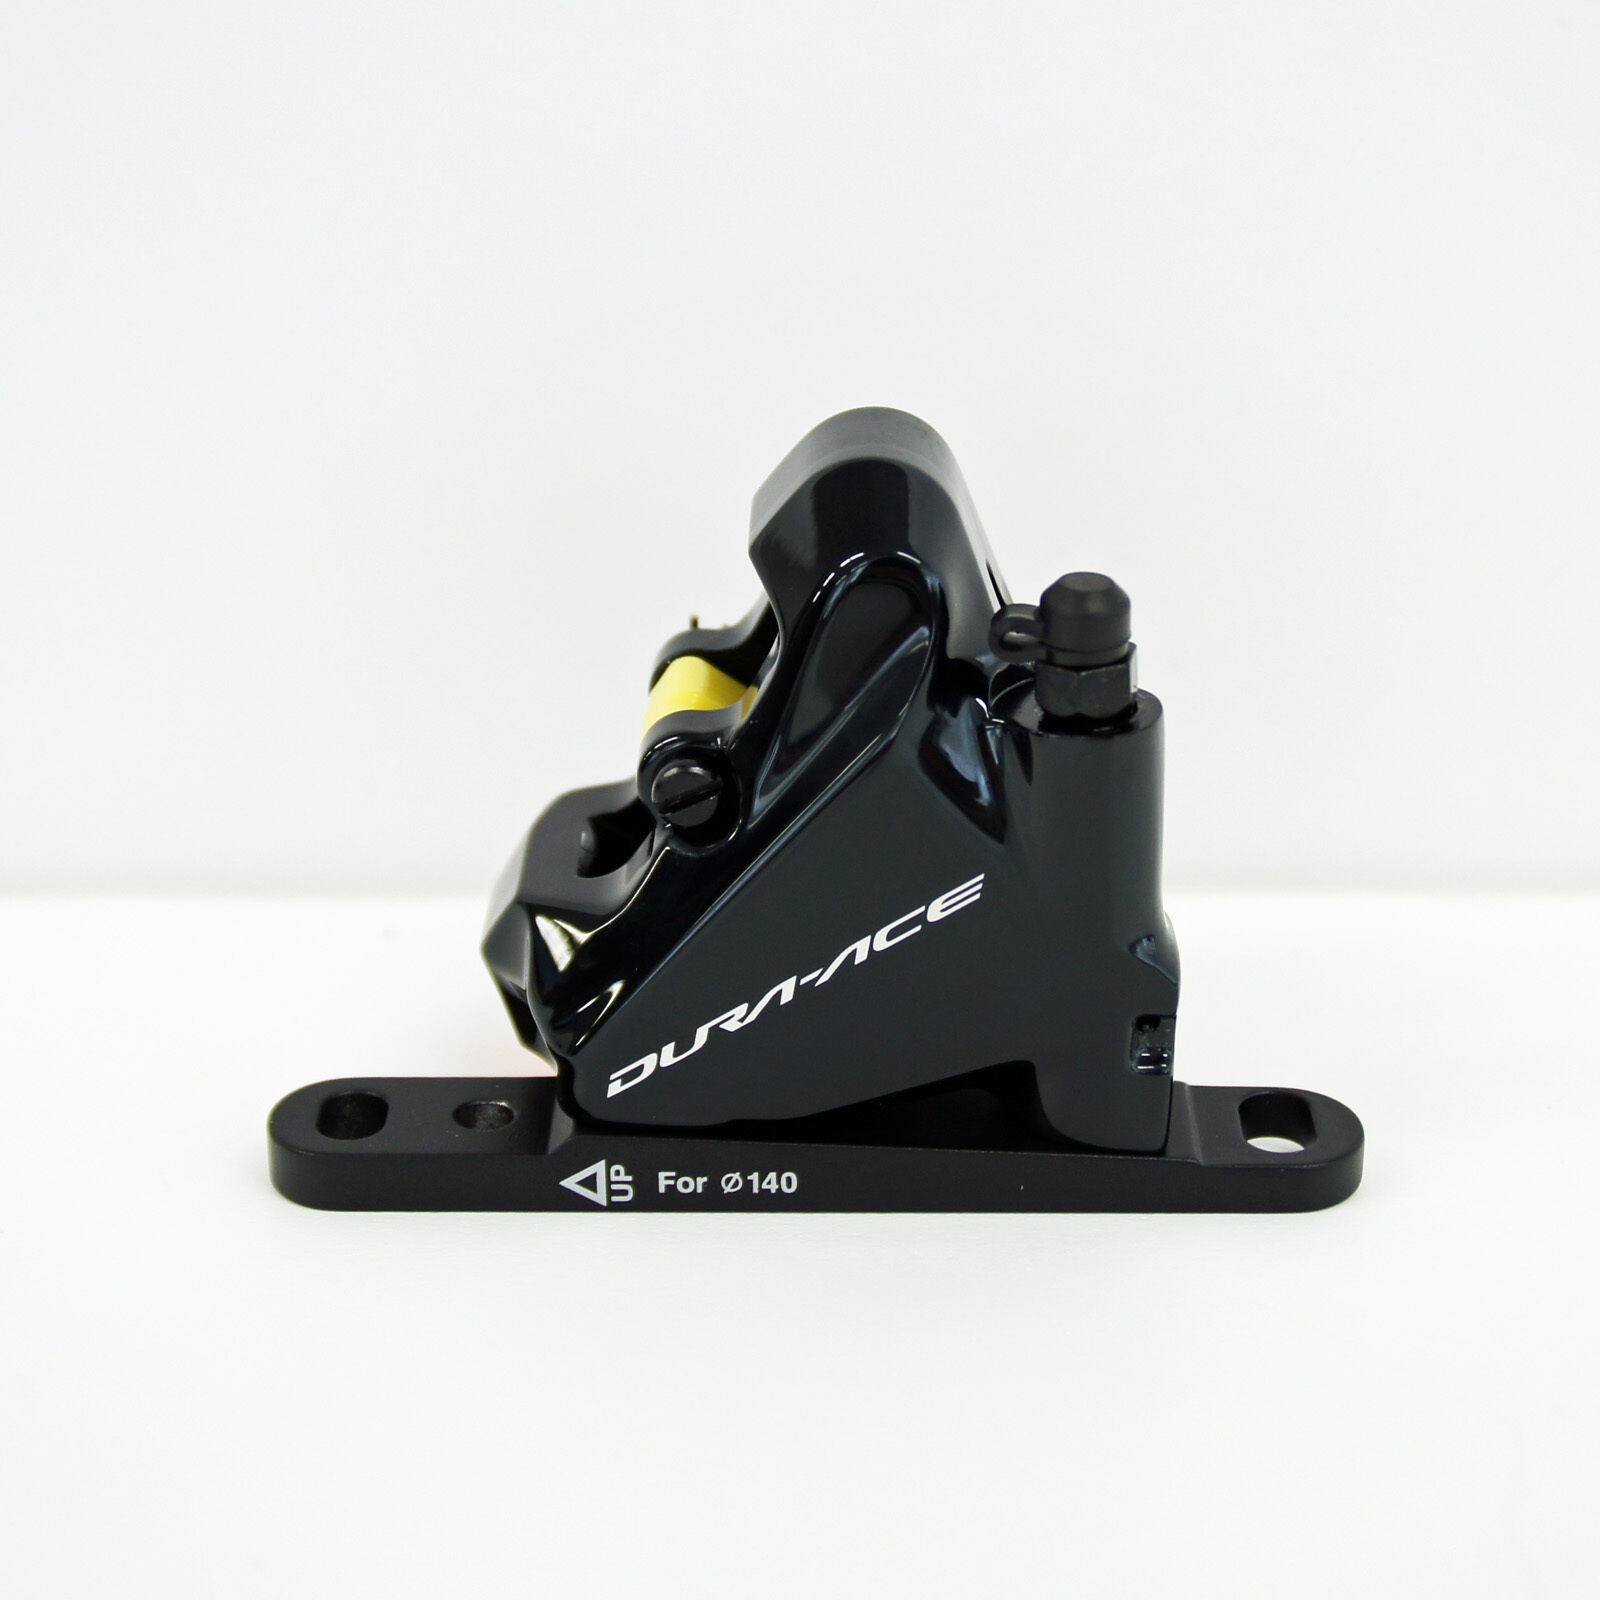 Shimano Dura-Ace BR-R9170 Hydraulic Brake Caliper (Front Only) IBRR9170F1RF